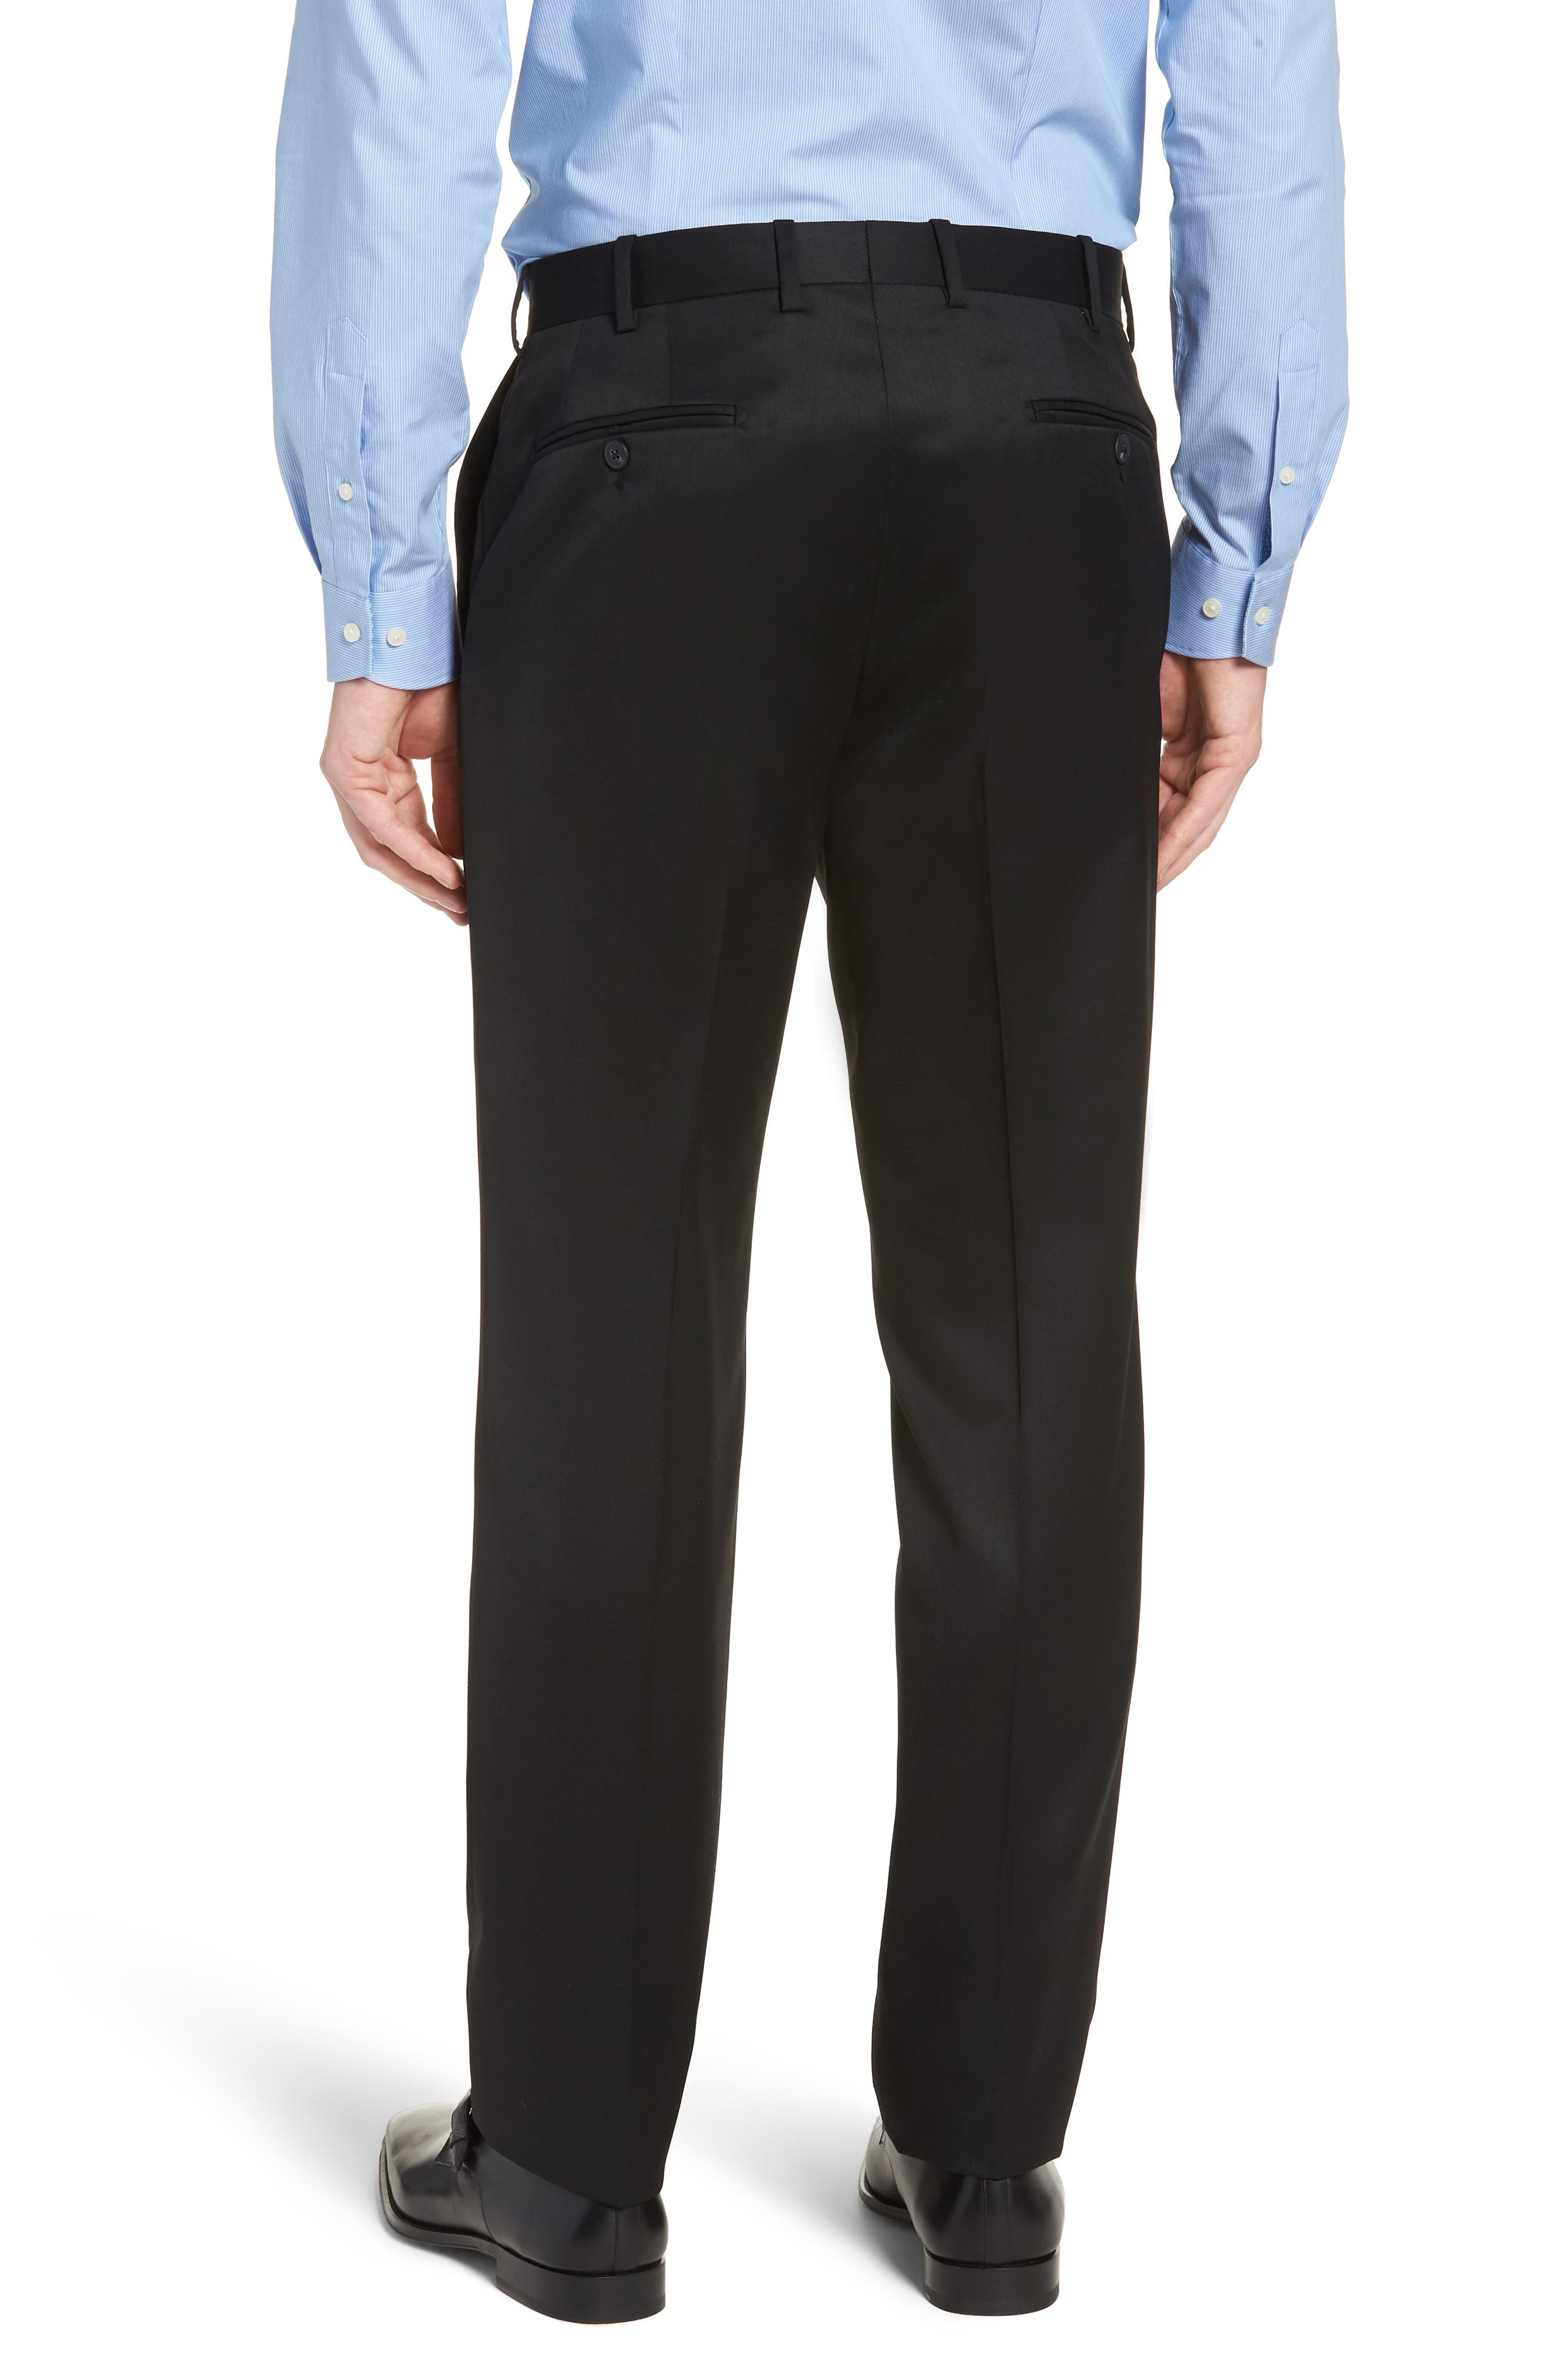 JOHN W. NORDSTROM<SUP>®</SUP>, Torino Traditional Fit Flat Front Solid Trousers, Alternate thumbnail 2, color, BLACK